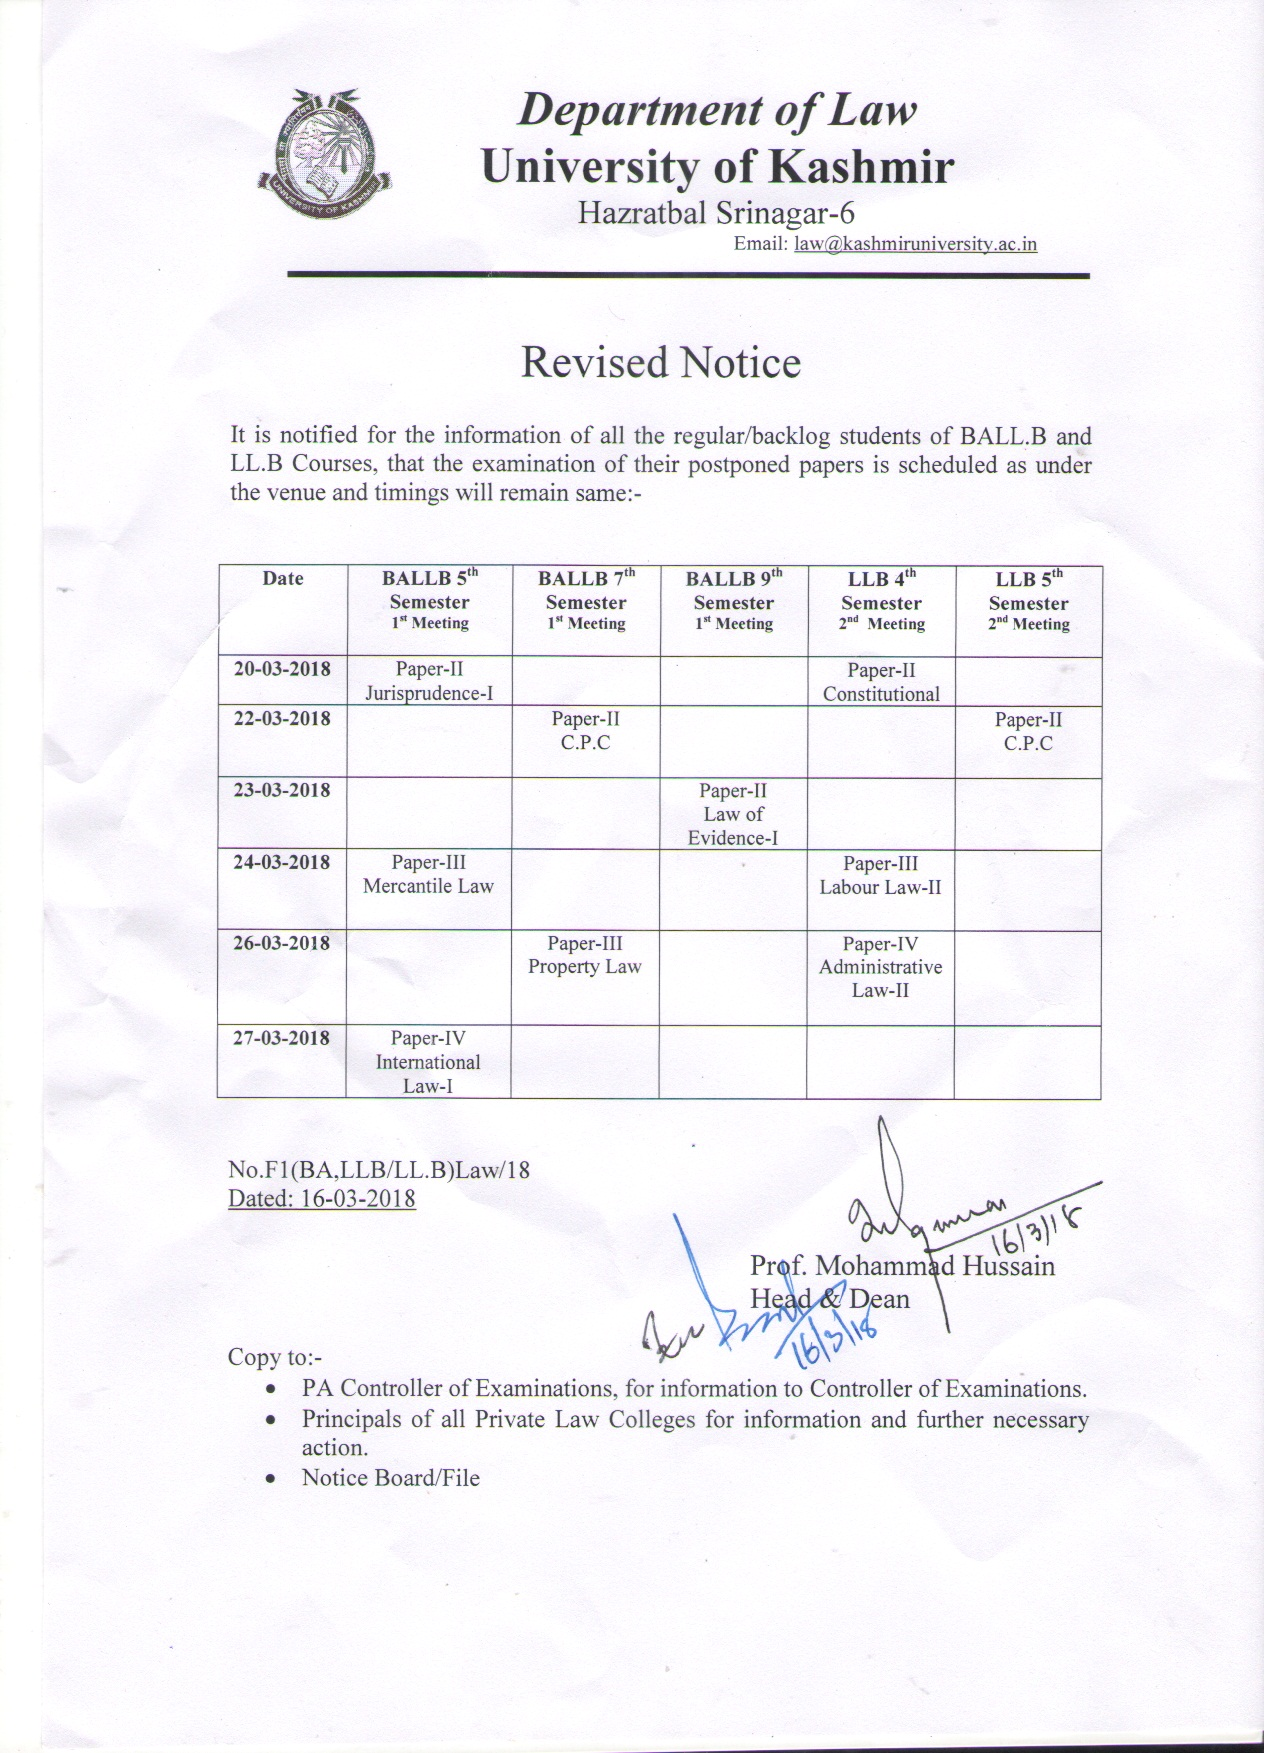 ... revised date sheet for BA.LL.B and LL.B programmes; Dated: 16-3-2018 ...